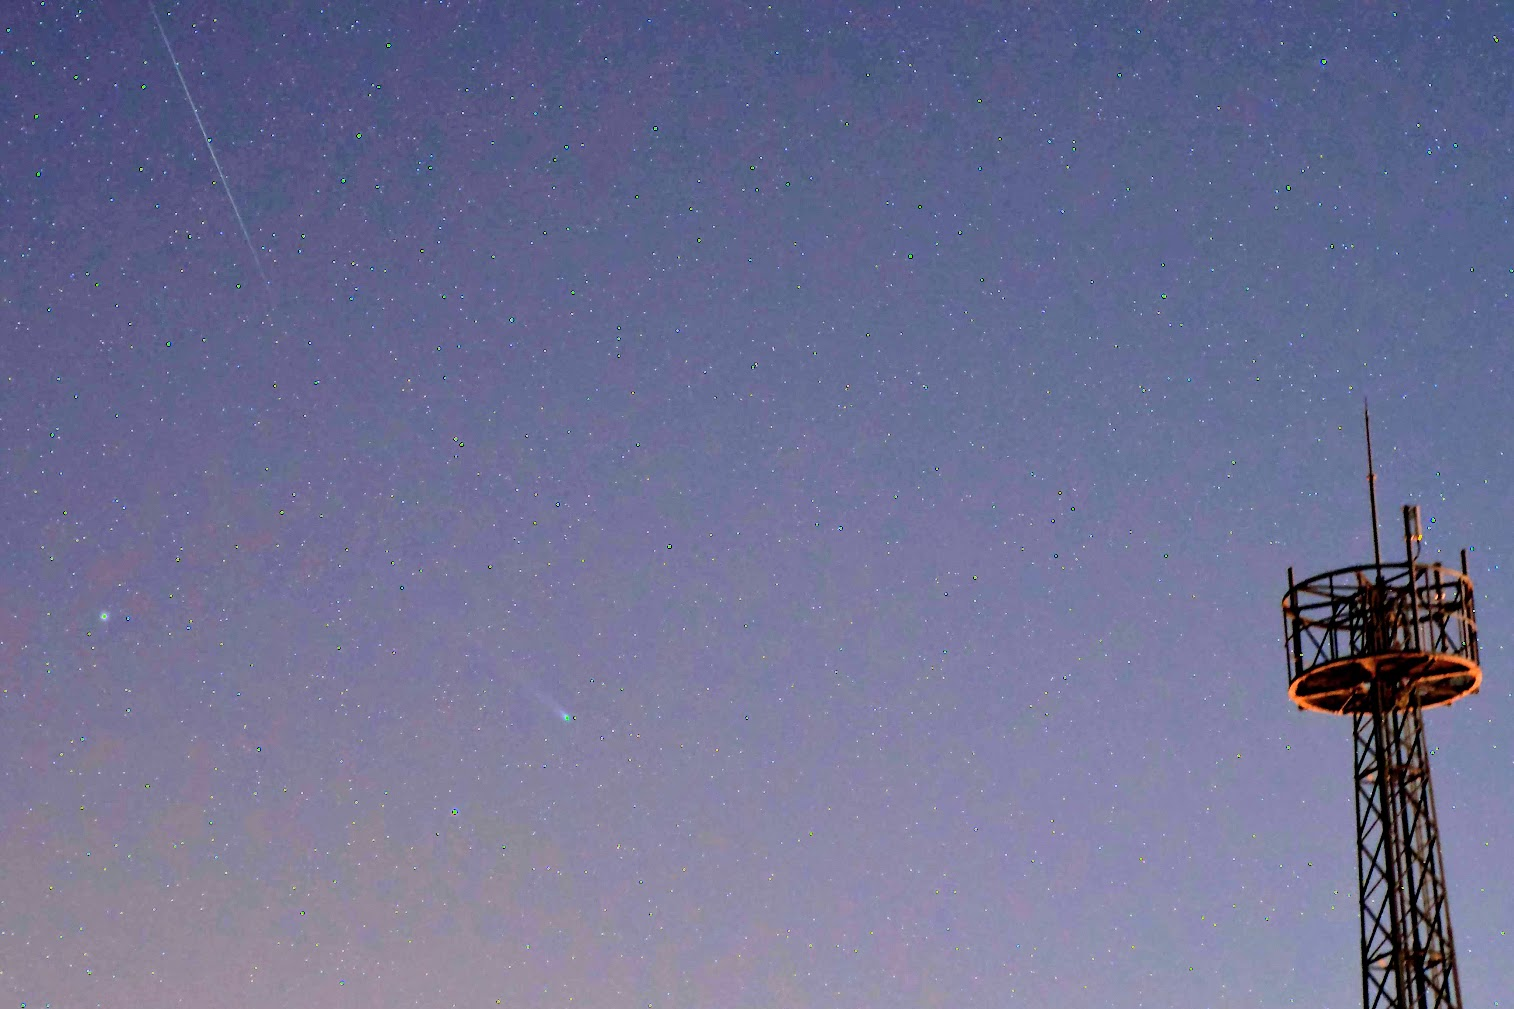 Comet Lovejoy (C/2013 R1) and A Geminid Meteor - Cropped Version